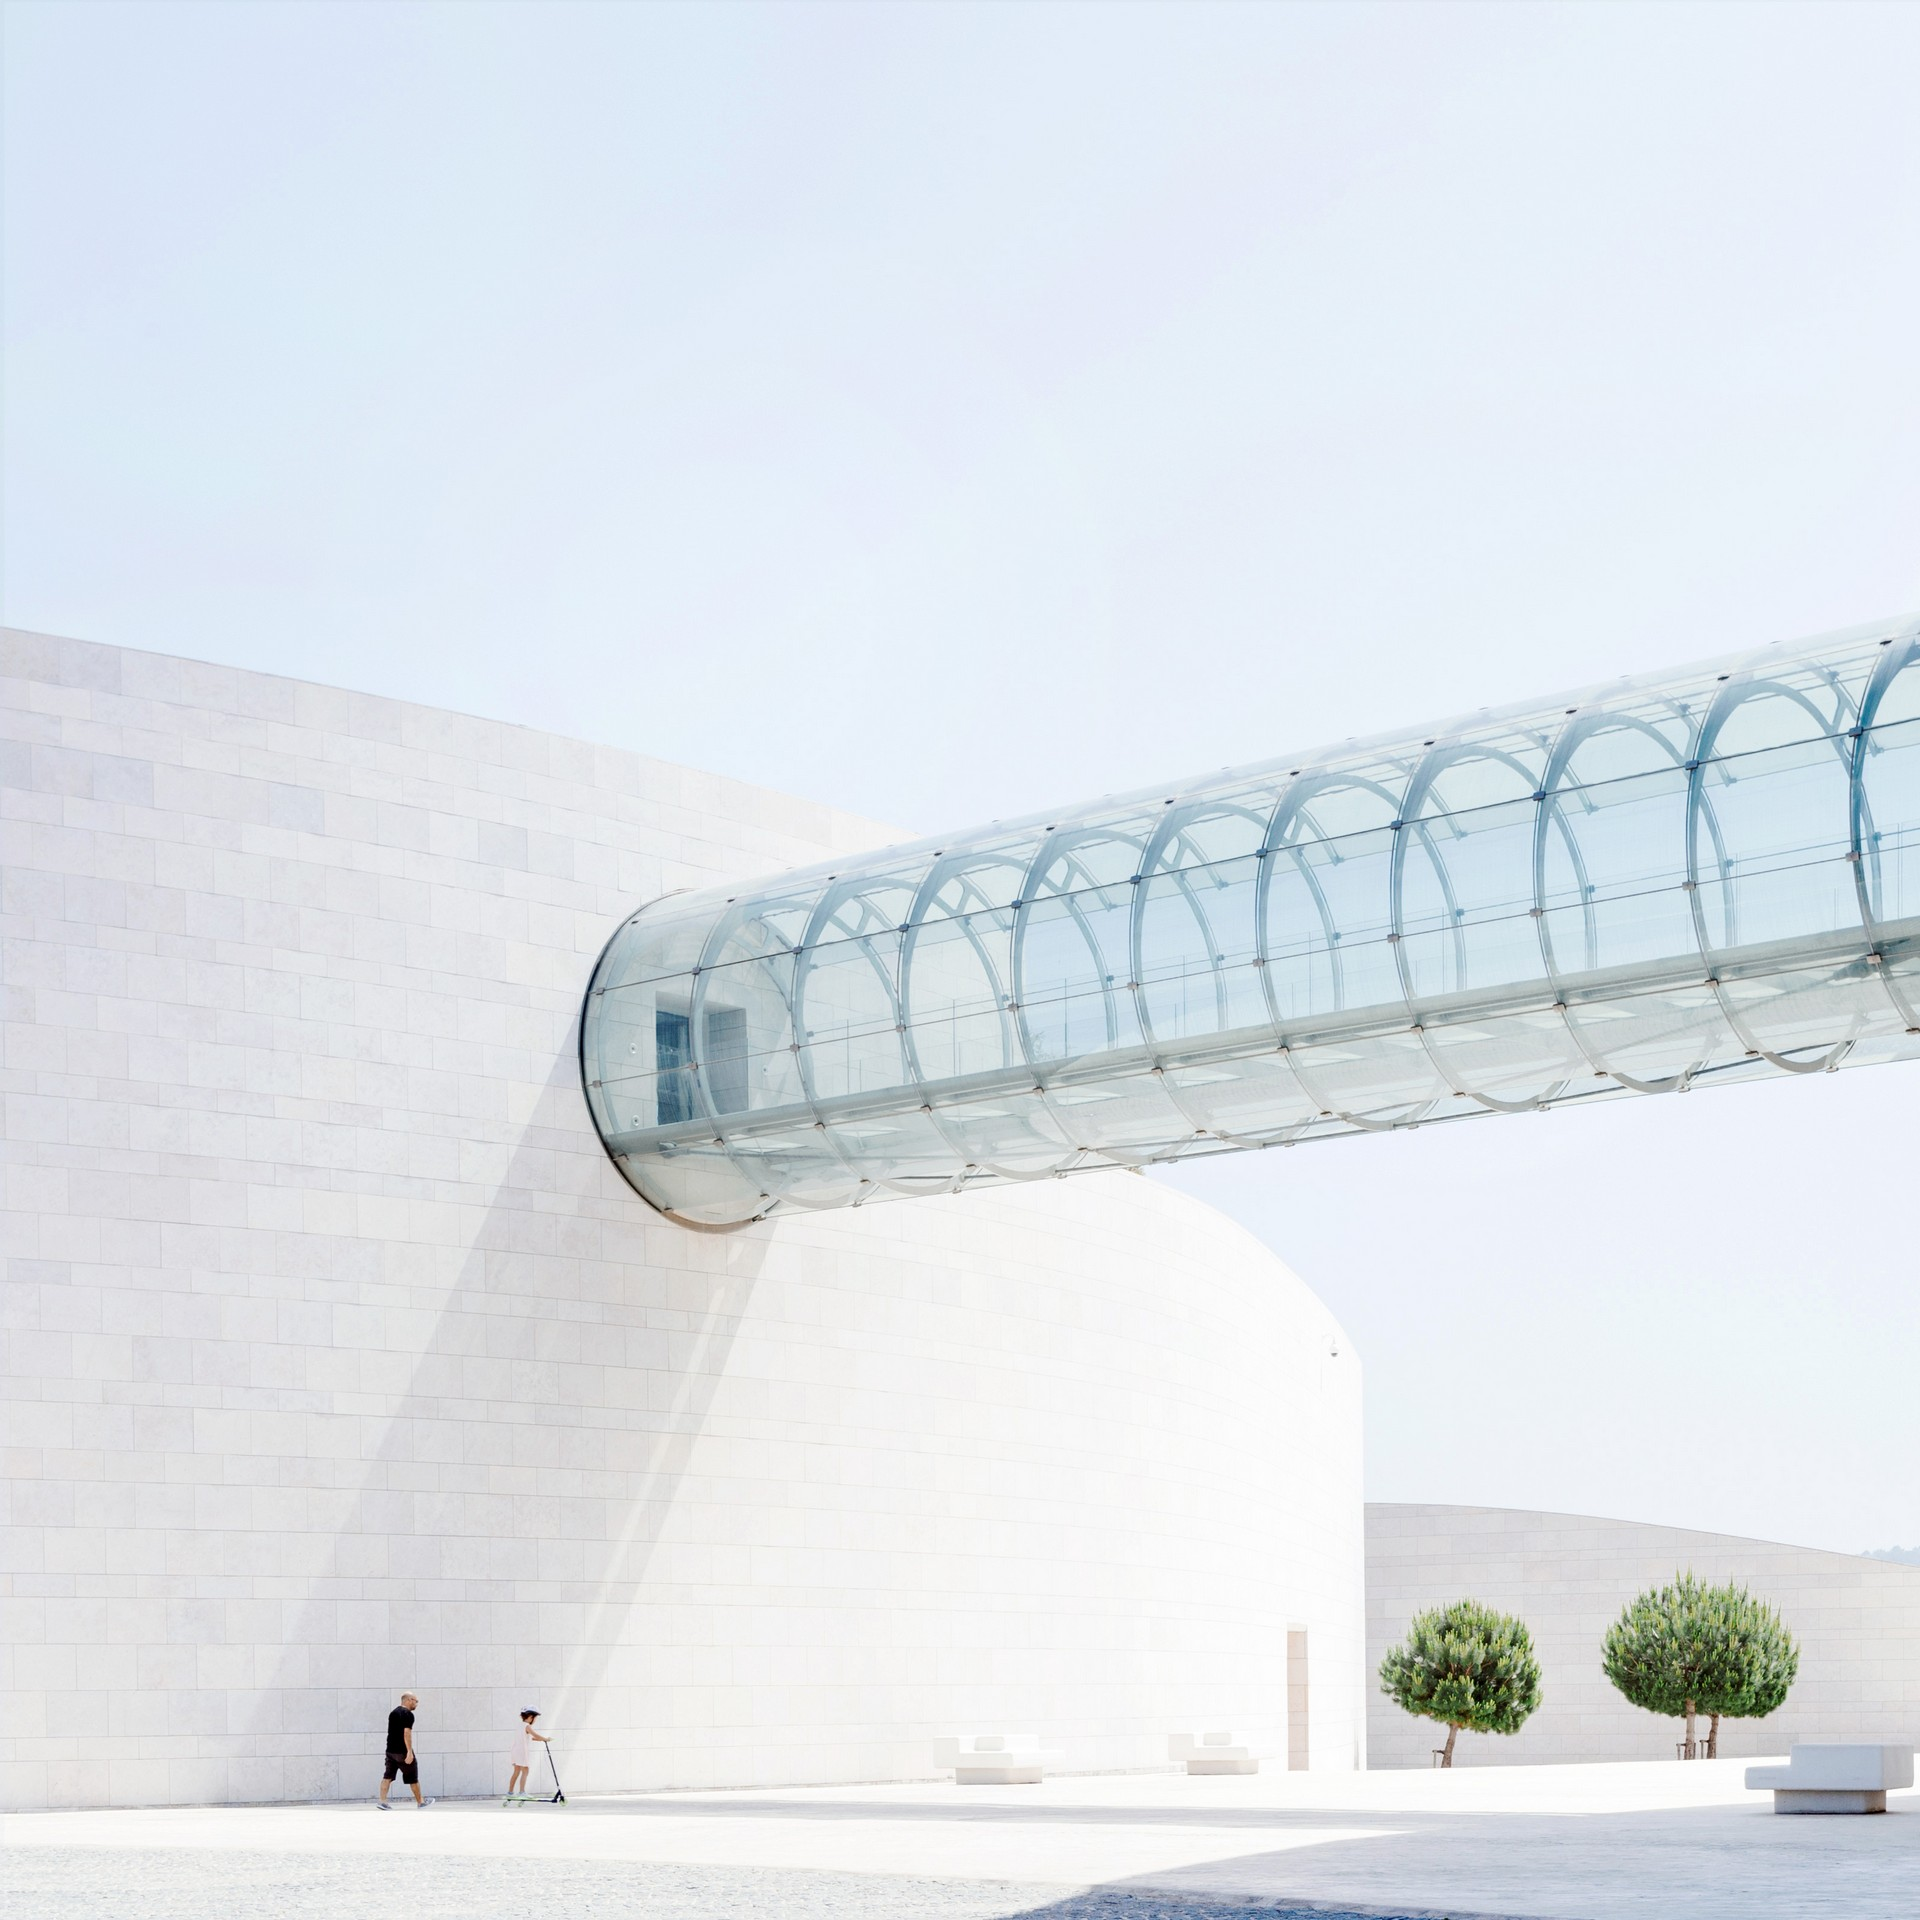 Champalimaud Foundation champalimaud foundation Champalimaud Foundation is the Centre For the Unknown Champalimaud Foundationl 7